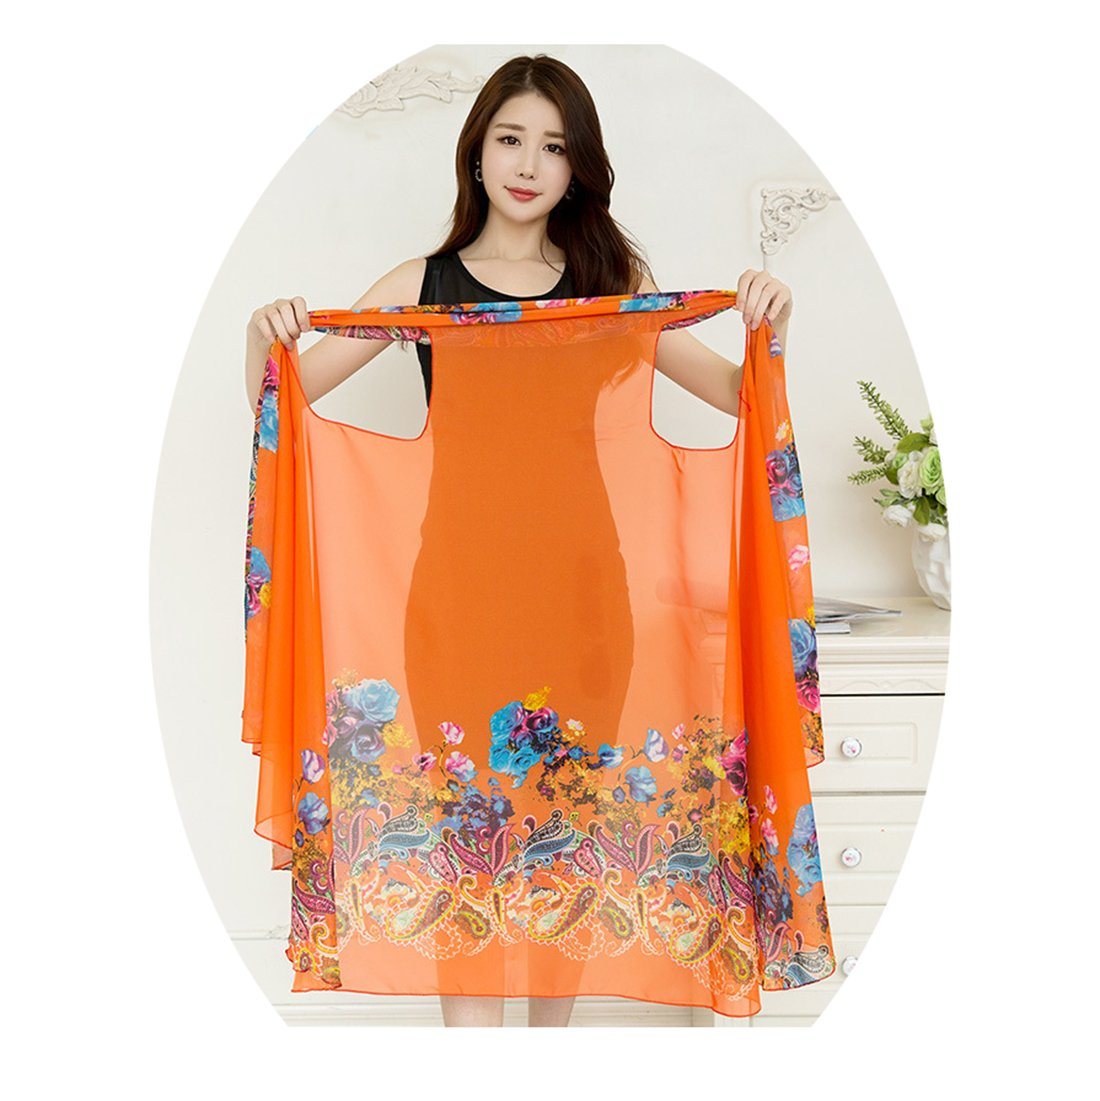 VWU Womens Magic Shawl Versatile Scarf, Can Be Dress/Vest/Bolero/Towel/Kilt/Shirt/Poncho/Beach Cover Ups and More Variation (ONE Size FIT More: 170105CM/7041IN, Style d02: Orange and Flower Print)